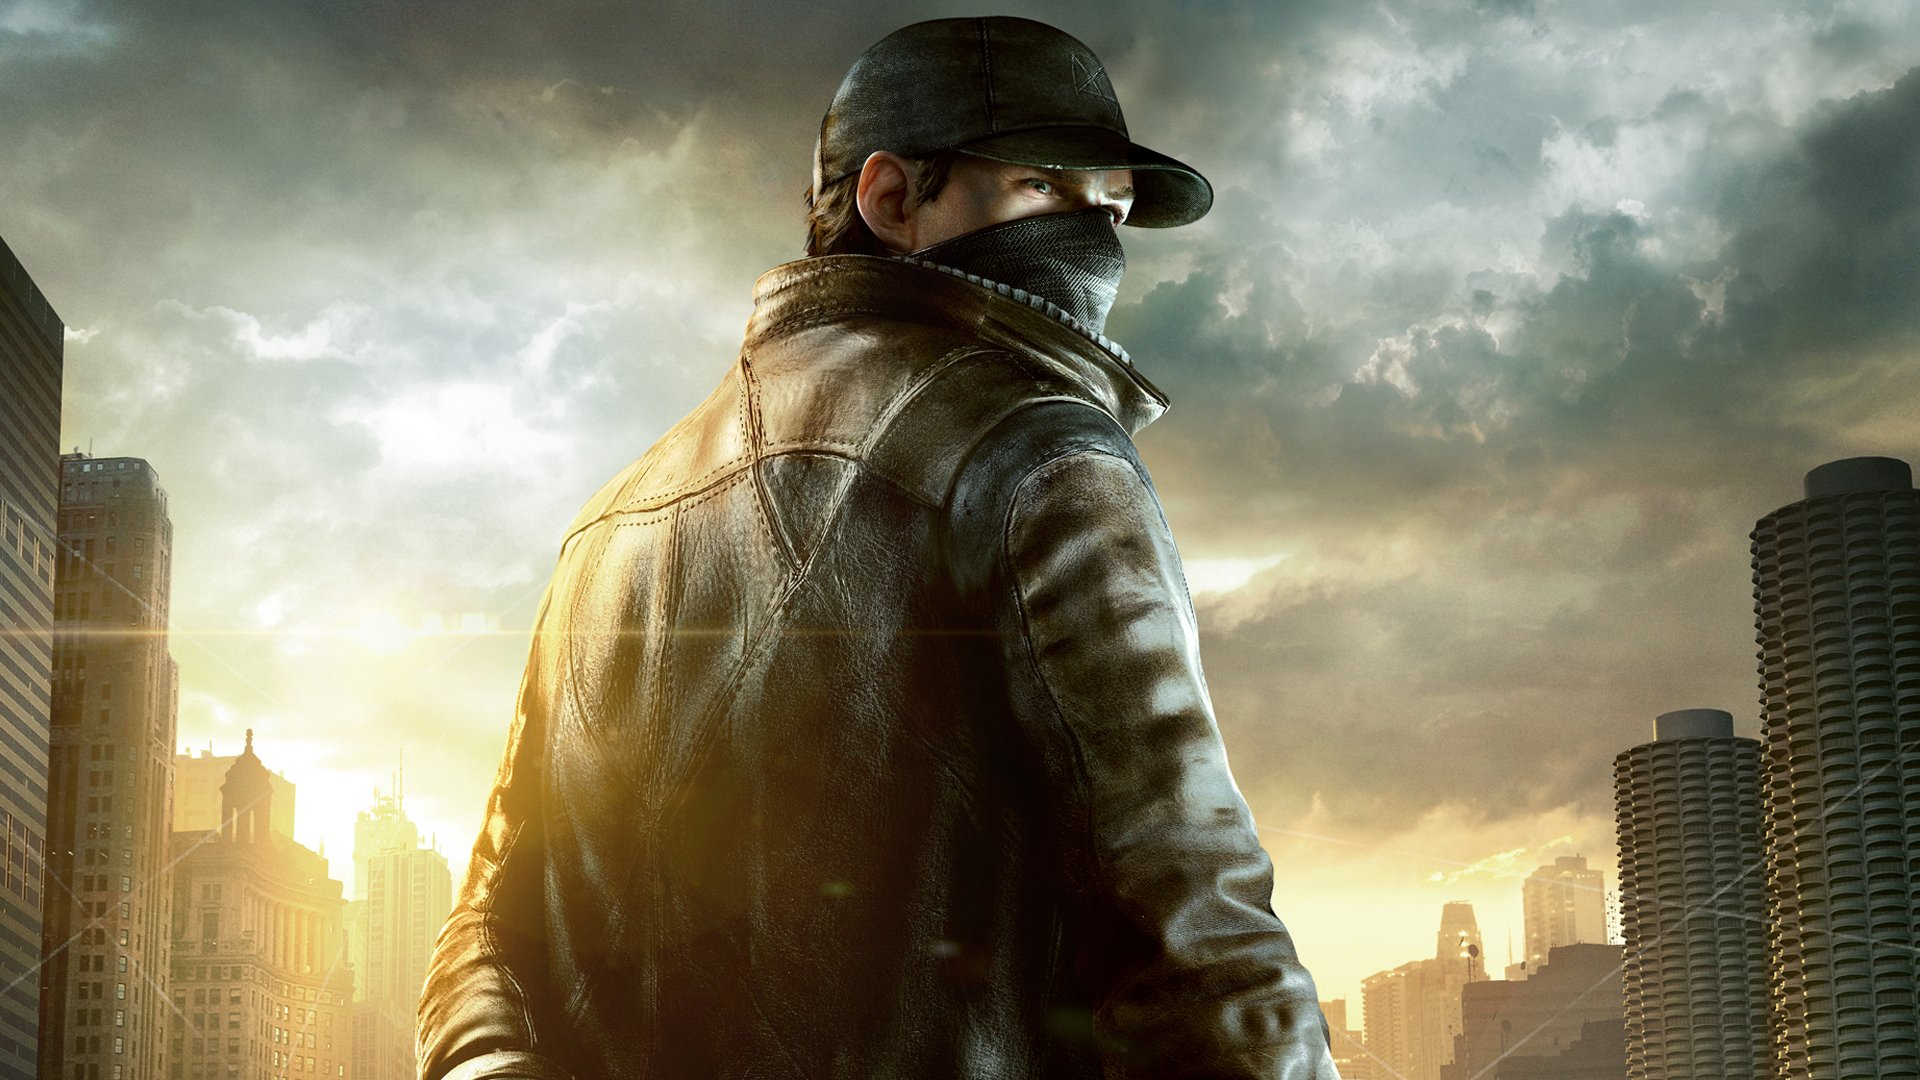 Aiden Pearce Hd Wallpaper Background Image 1920x1080 Id Images, Photos, Reviews